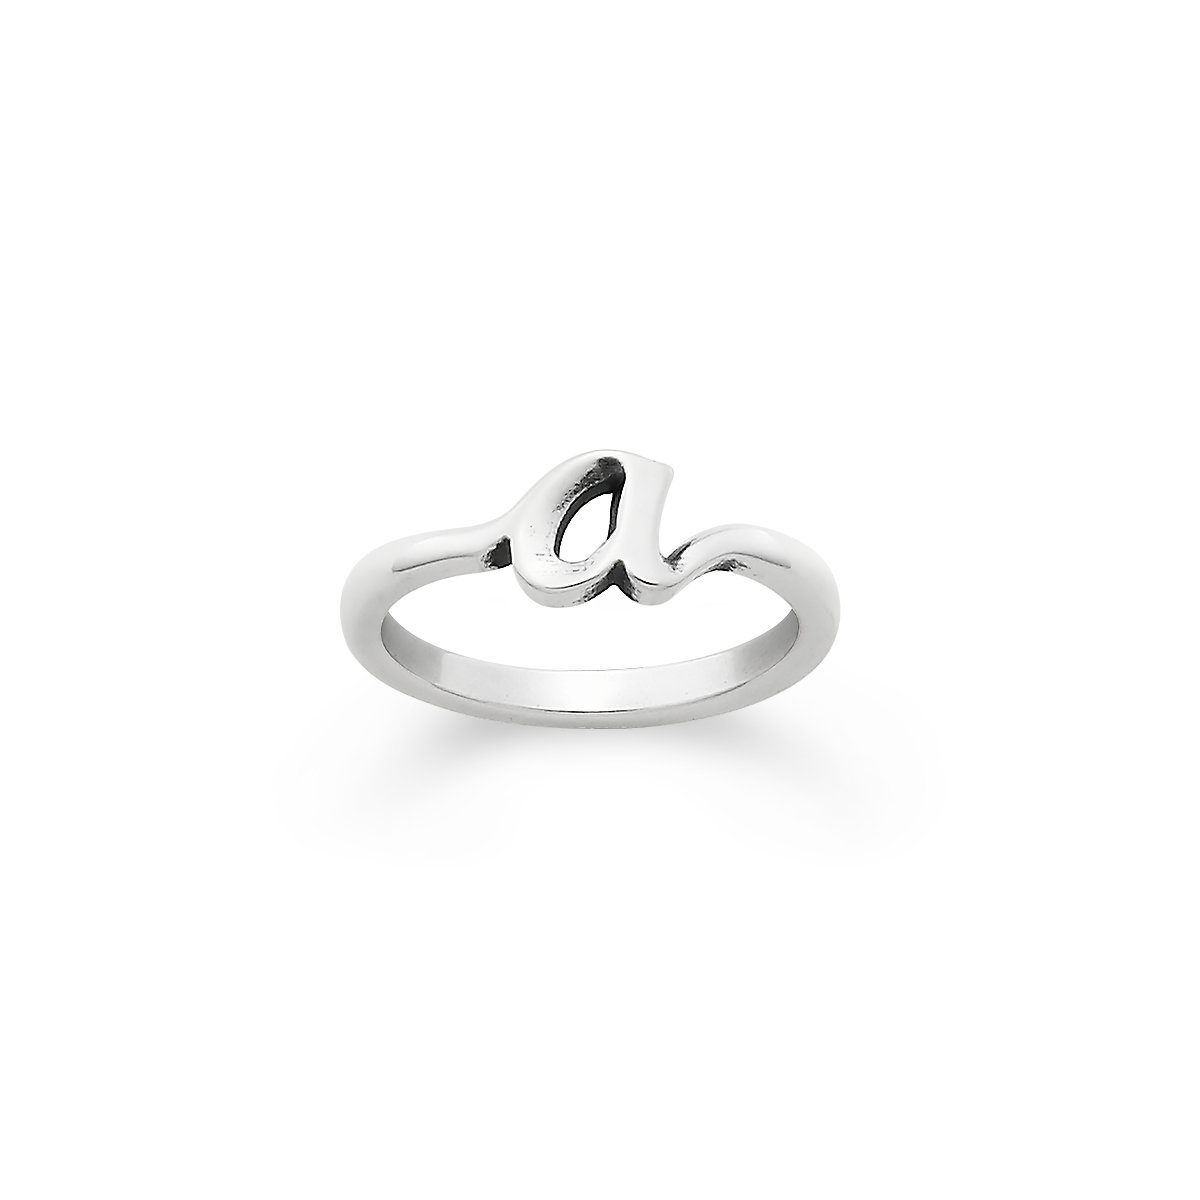 ring category archives product rings script lenawald word thin